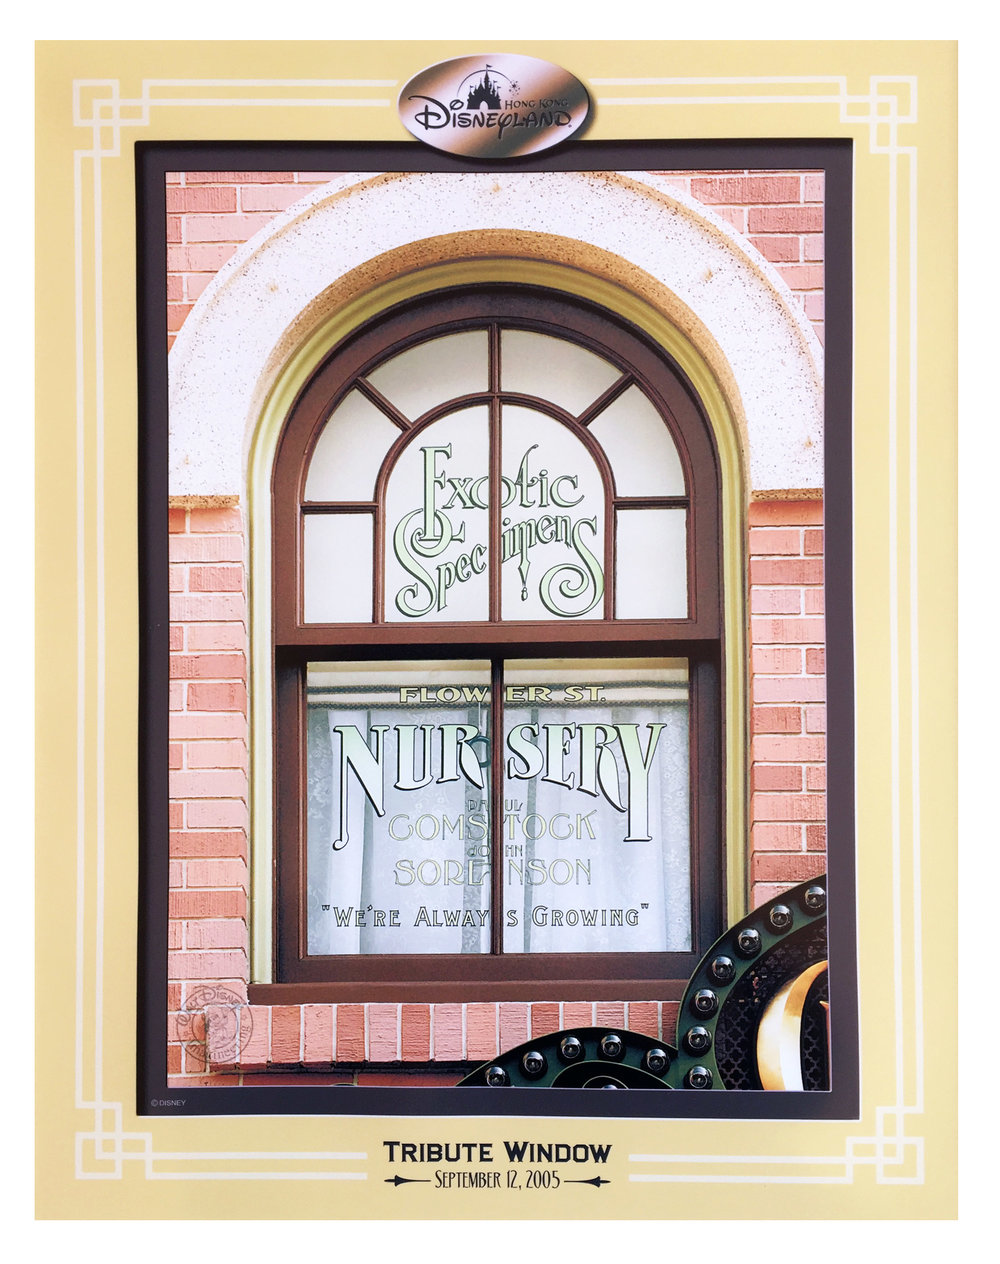 "The Walt Disney Company honored Comstock with a window on Main Street over the Curiosity Shop, proclaiming "" Landscape Specialists - we're always growing"" ."